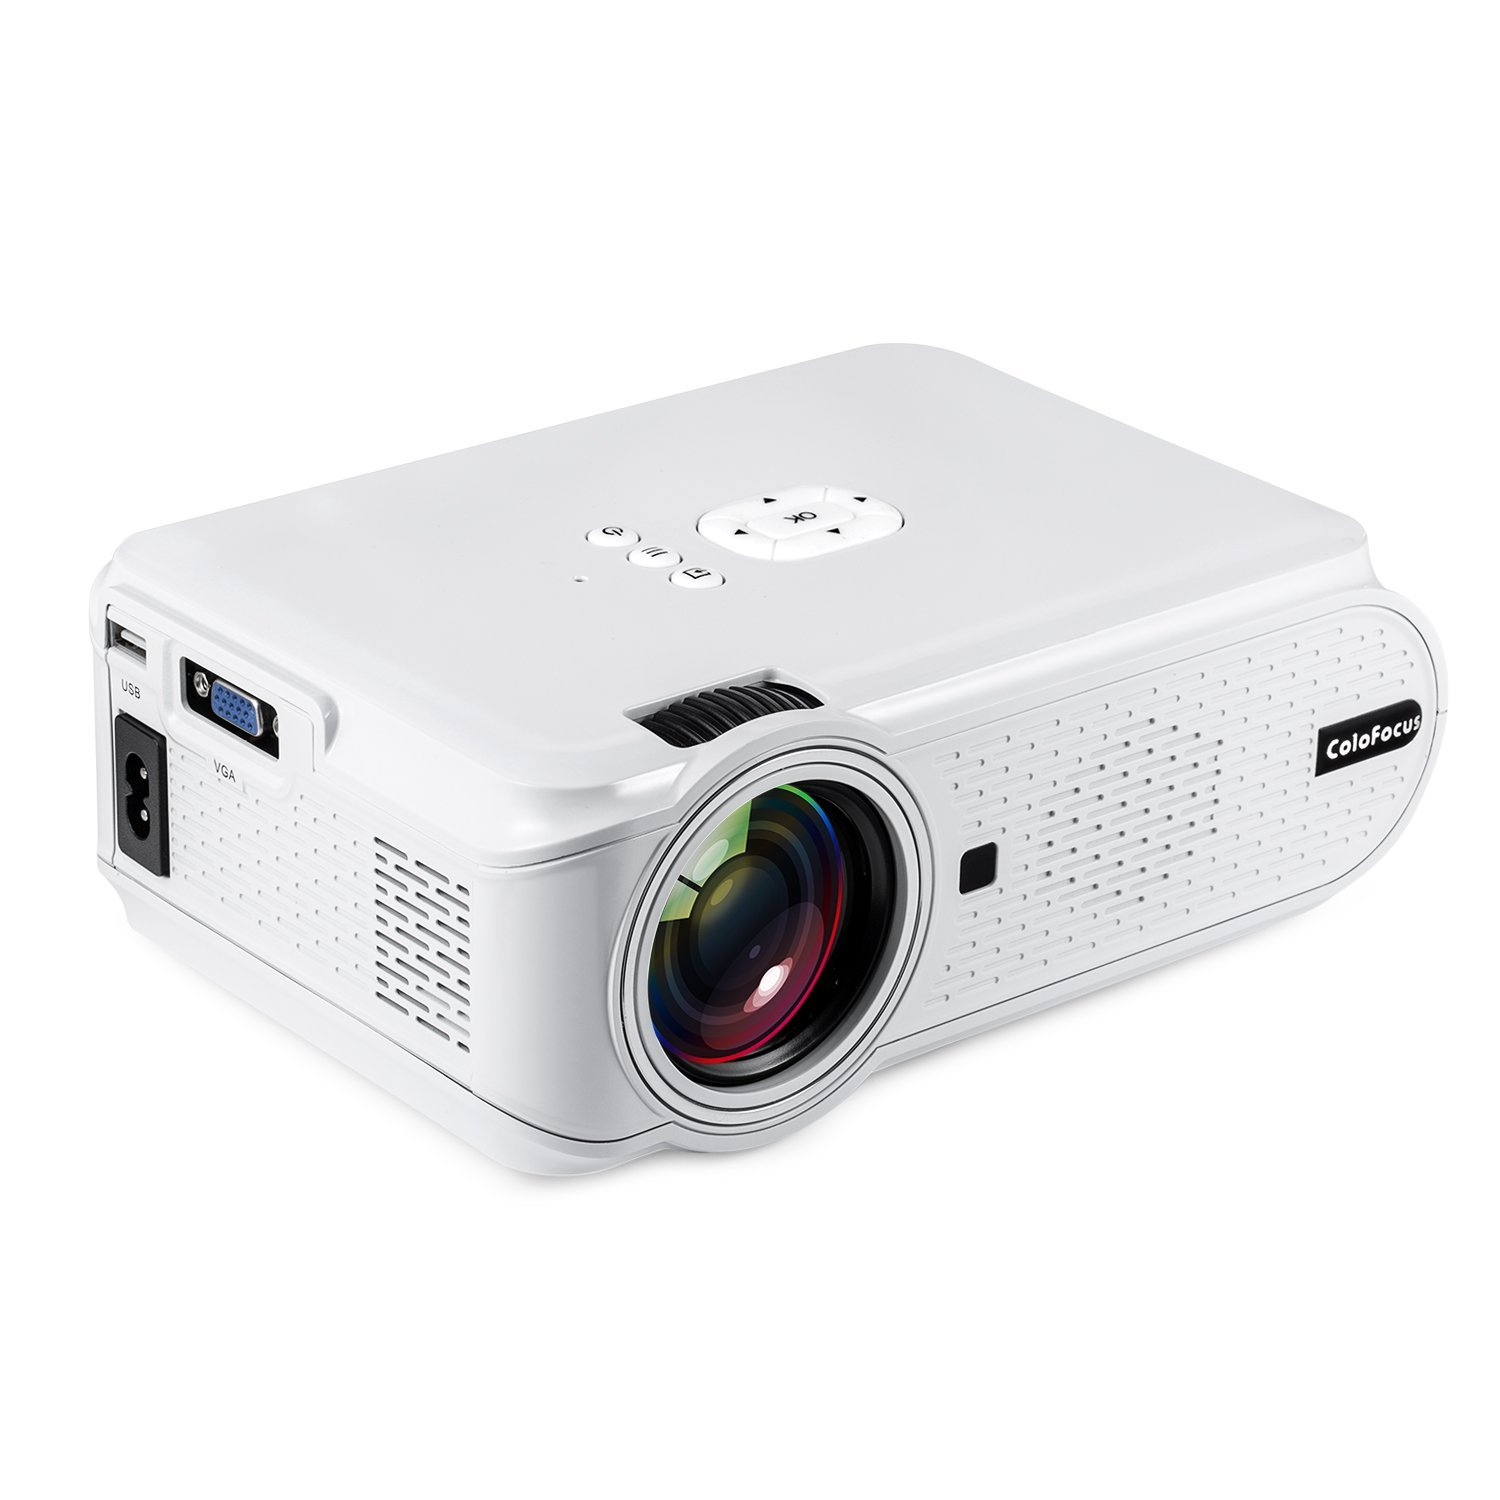 Hd projector home video mini projector with 1080p for Mini hd projector